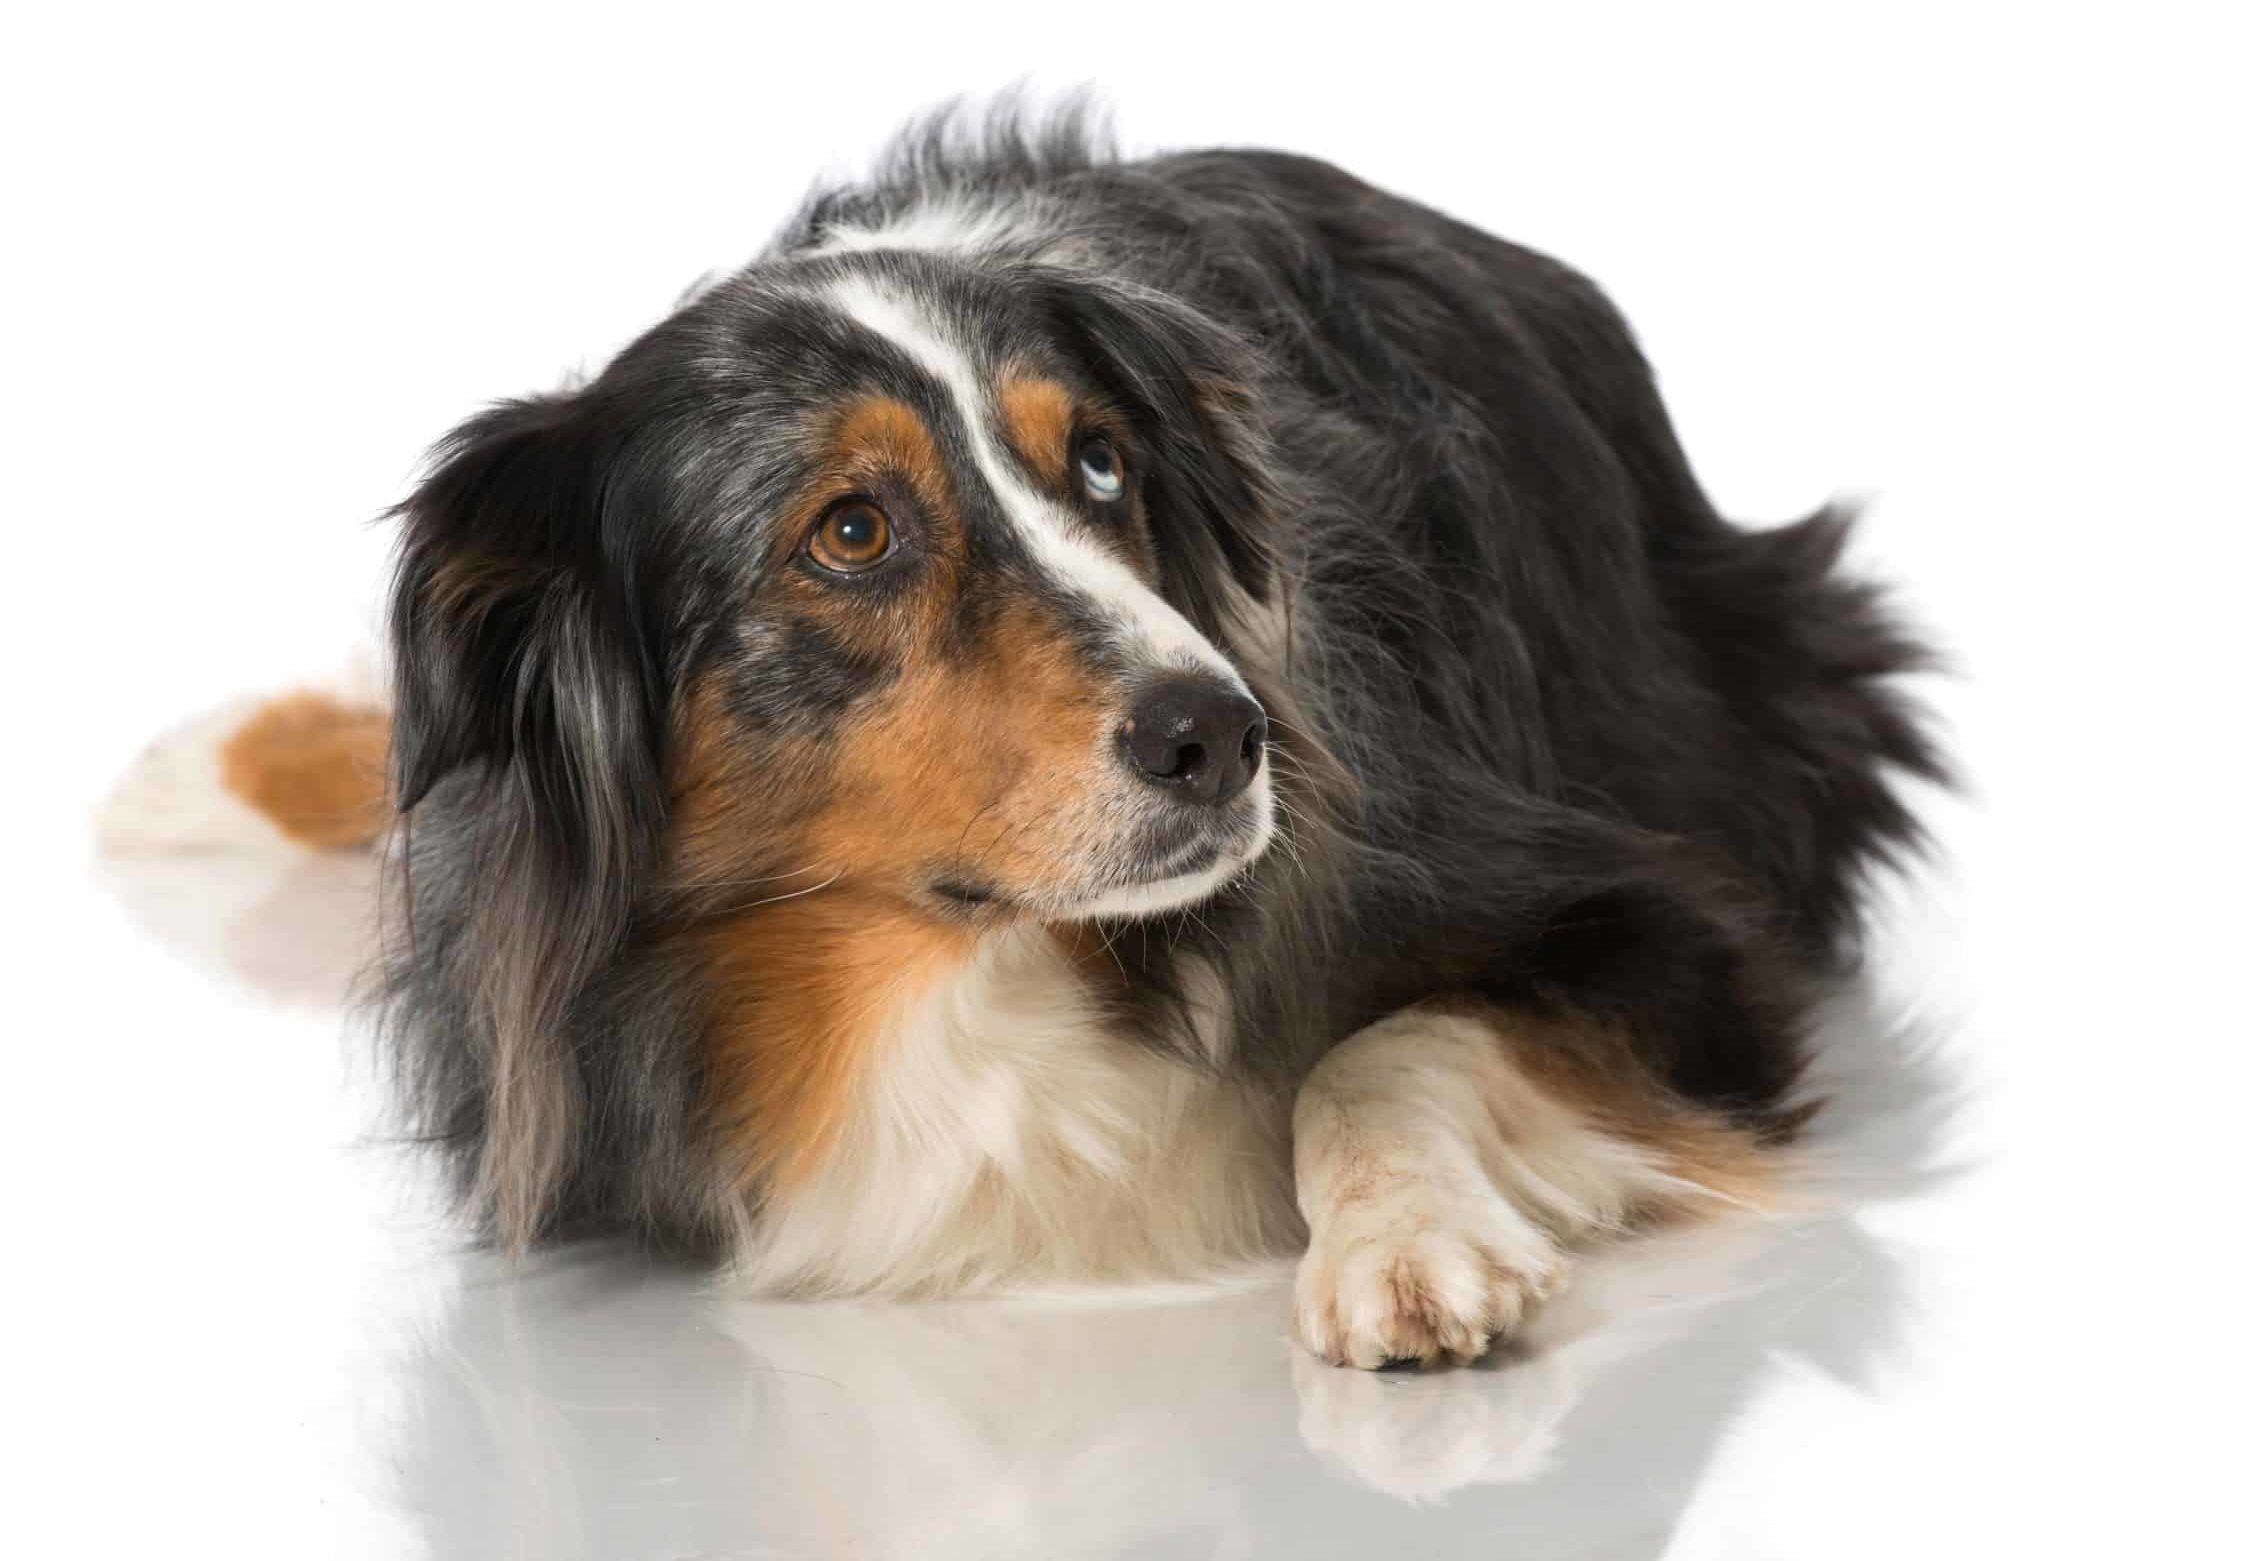 Nervous Australian Shepherd looks up. Reduce the risk of separation anxiety by preparing your dog to be home alone. Tire your dog out, create a safe space and use toys and treats.